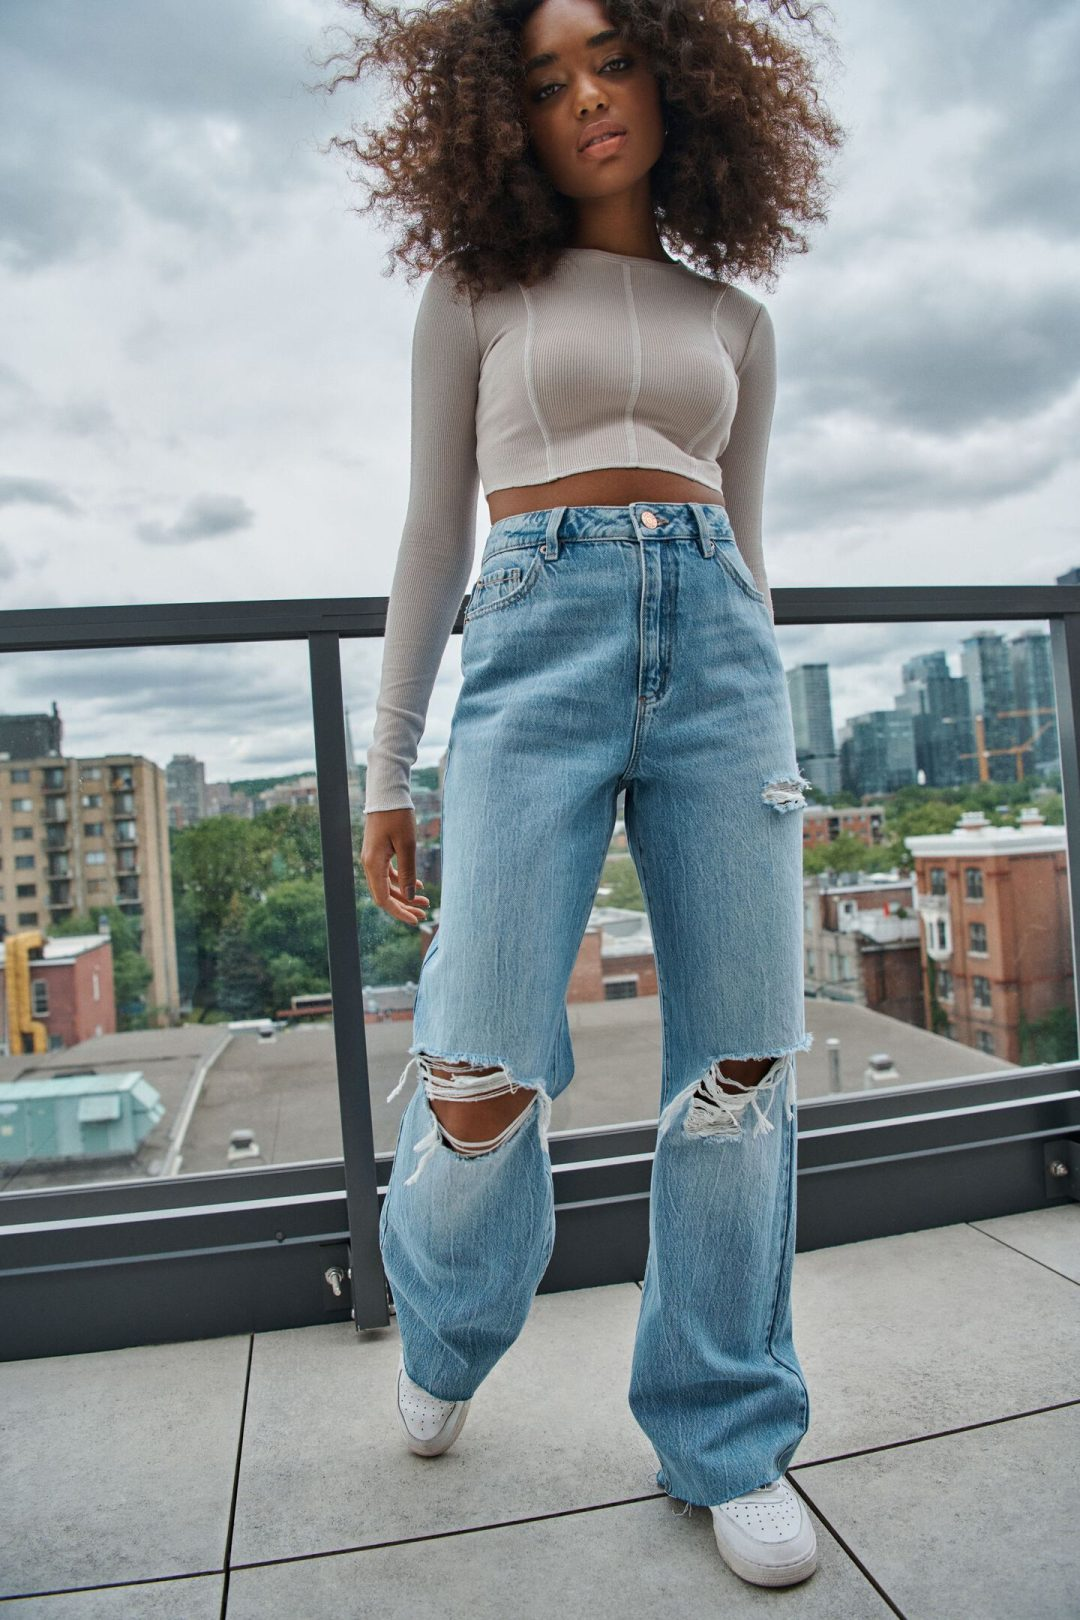 Cute aesthetic look with baggy jeans